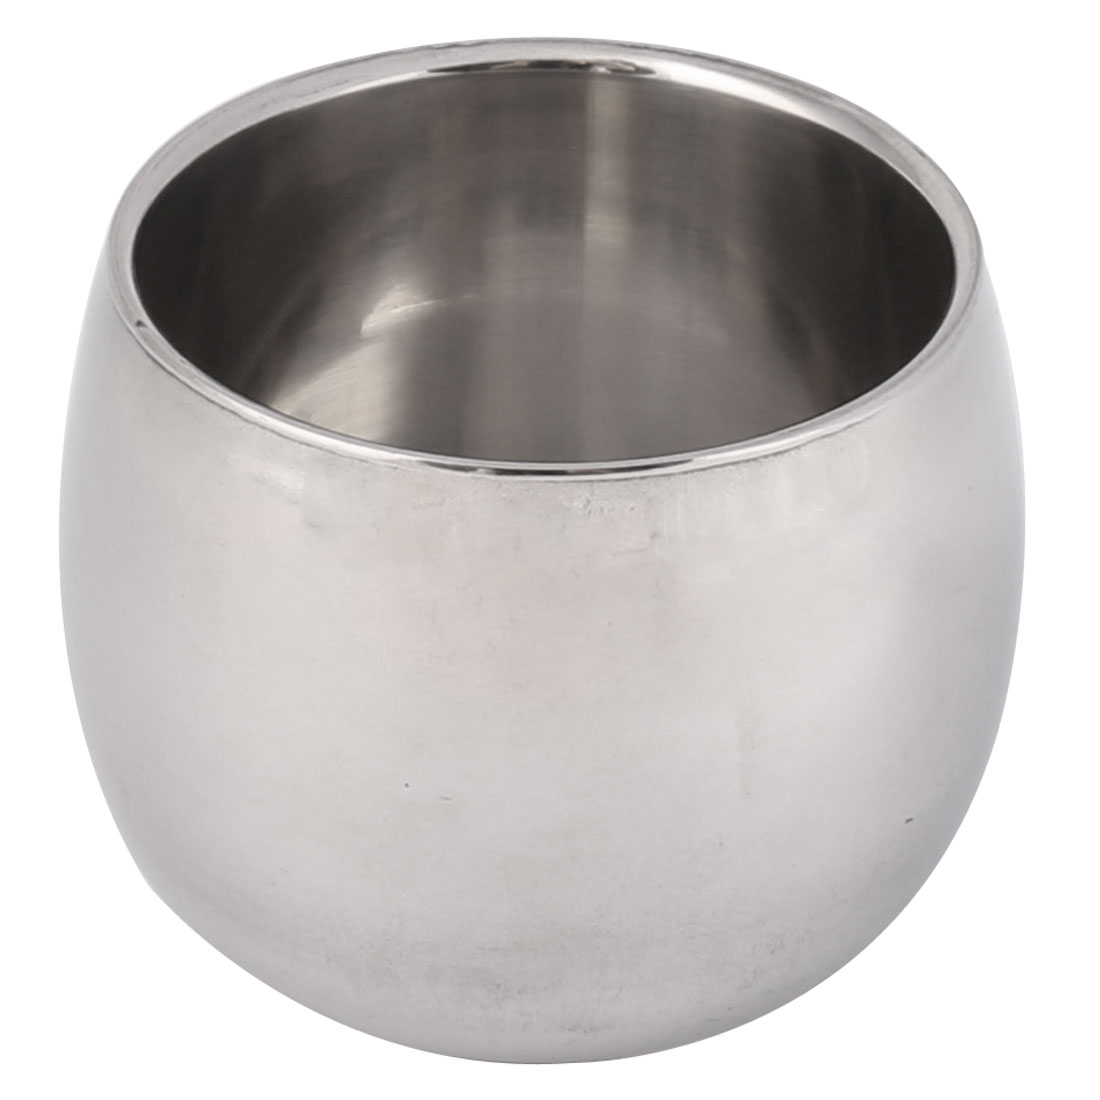 Home Office 304 Stainless Steel Lidless Anti-Scald Water Cup Drink Mug 140ML